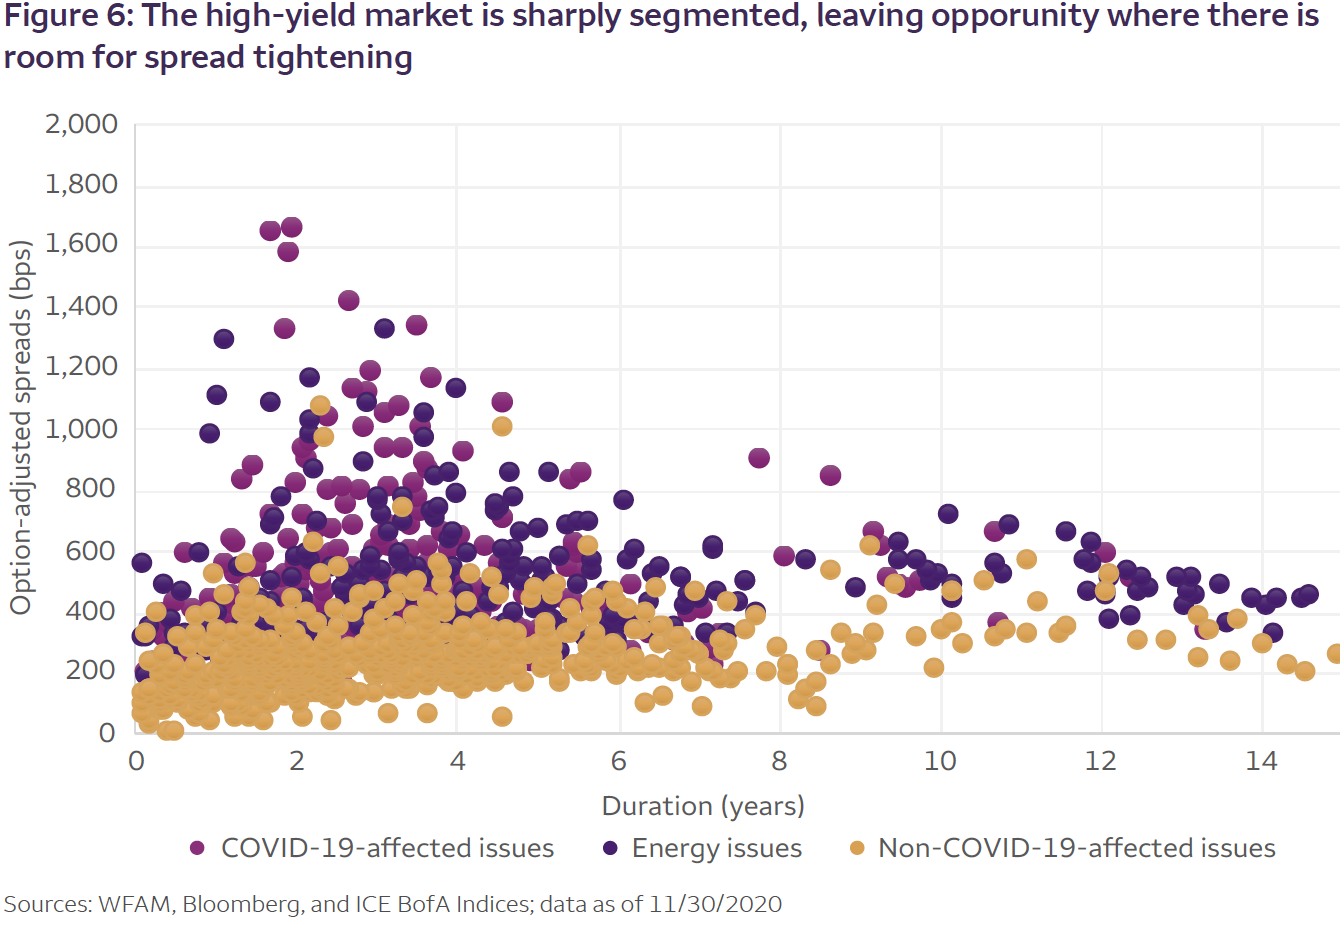 Figure 6: The high-yield market is sharply segmented, leaving opporunity where there is room for spread tightening